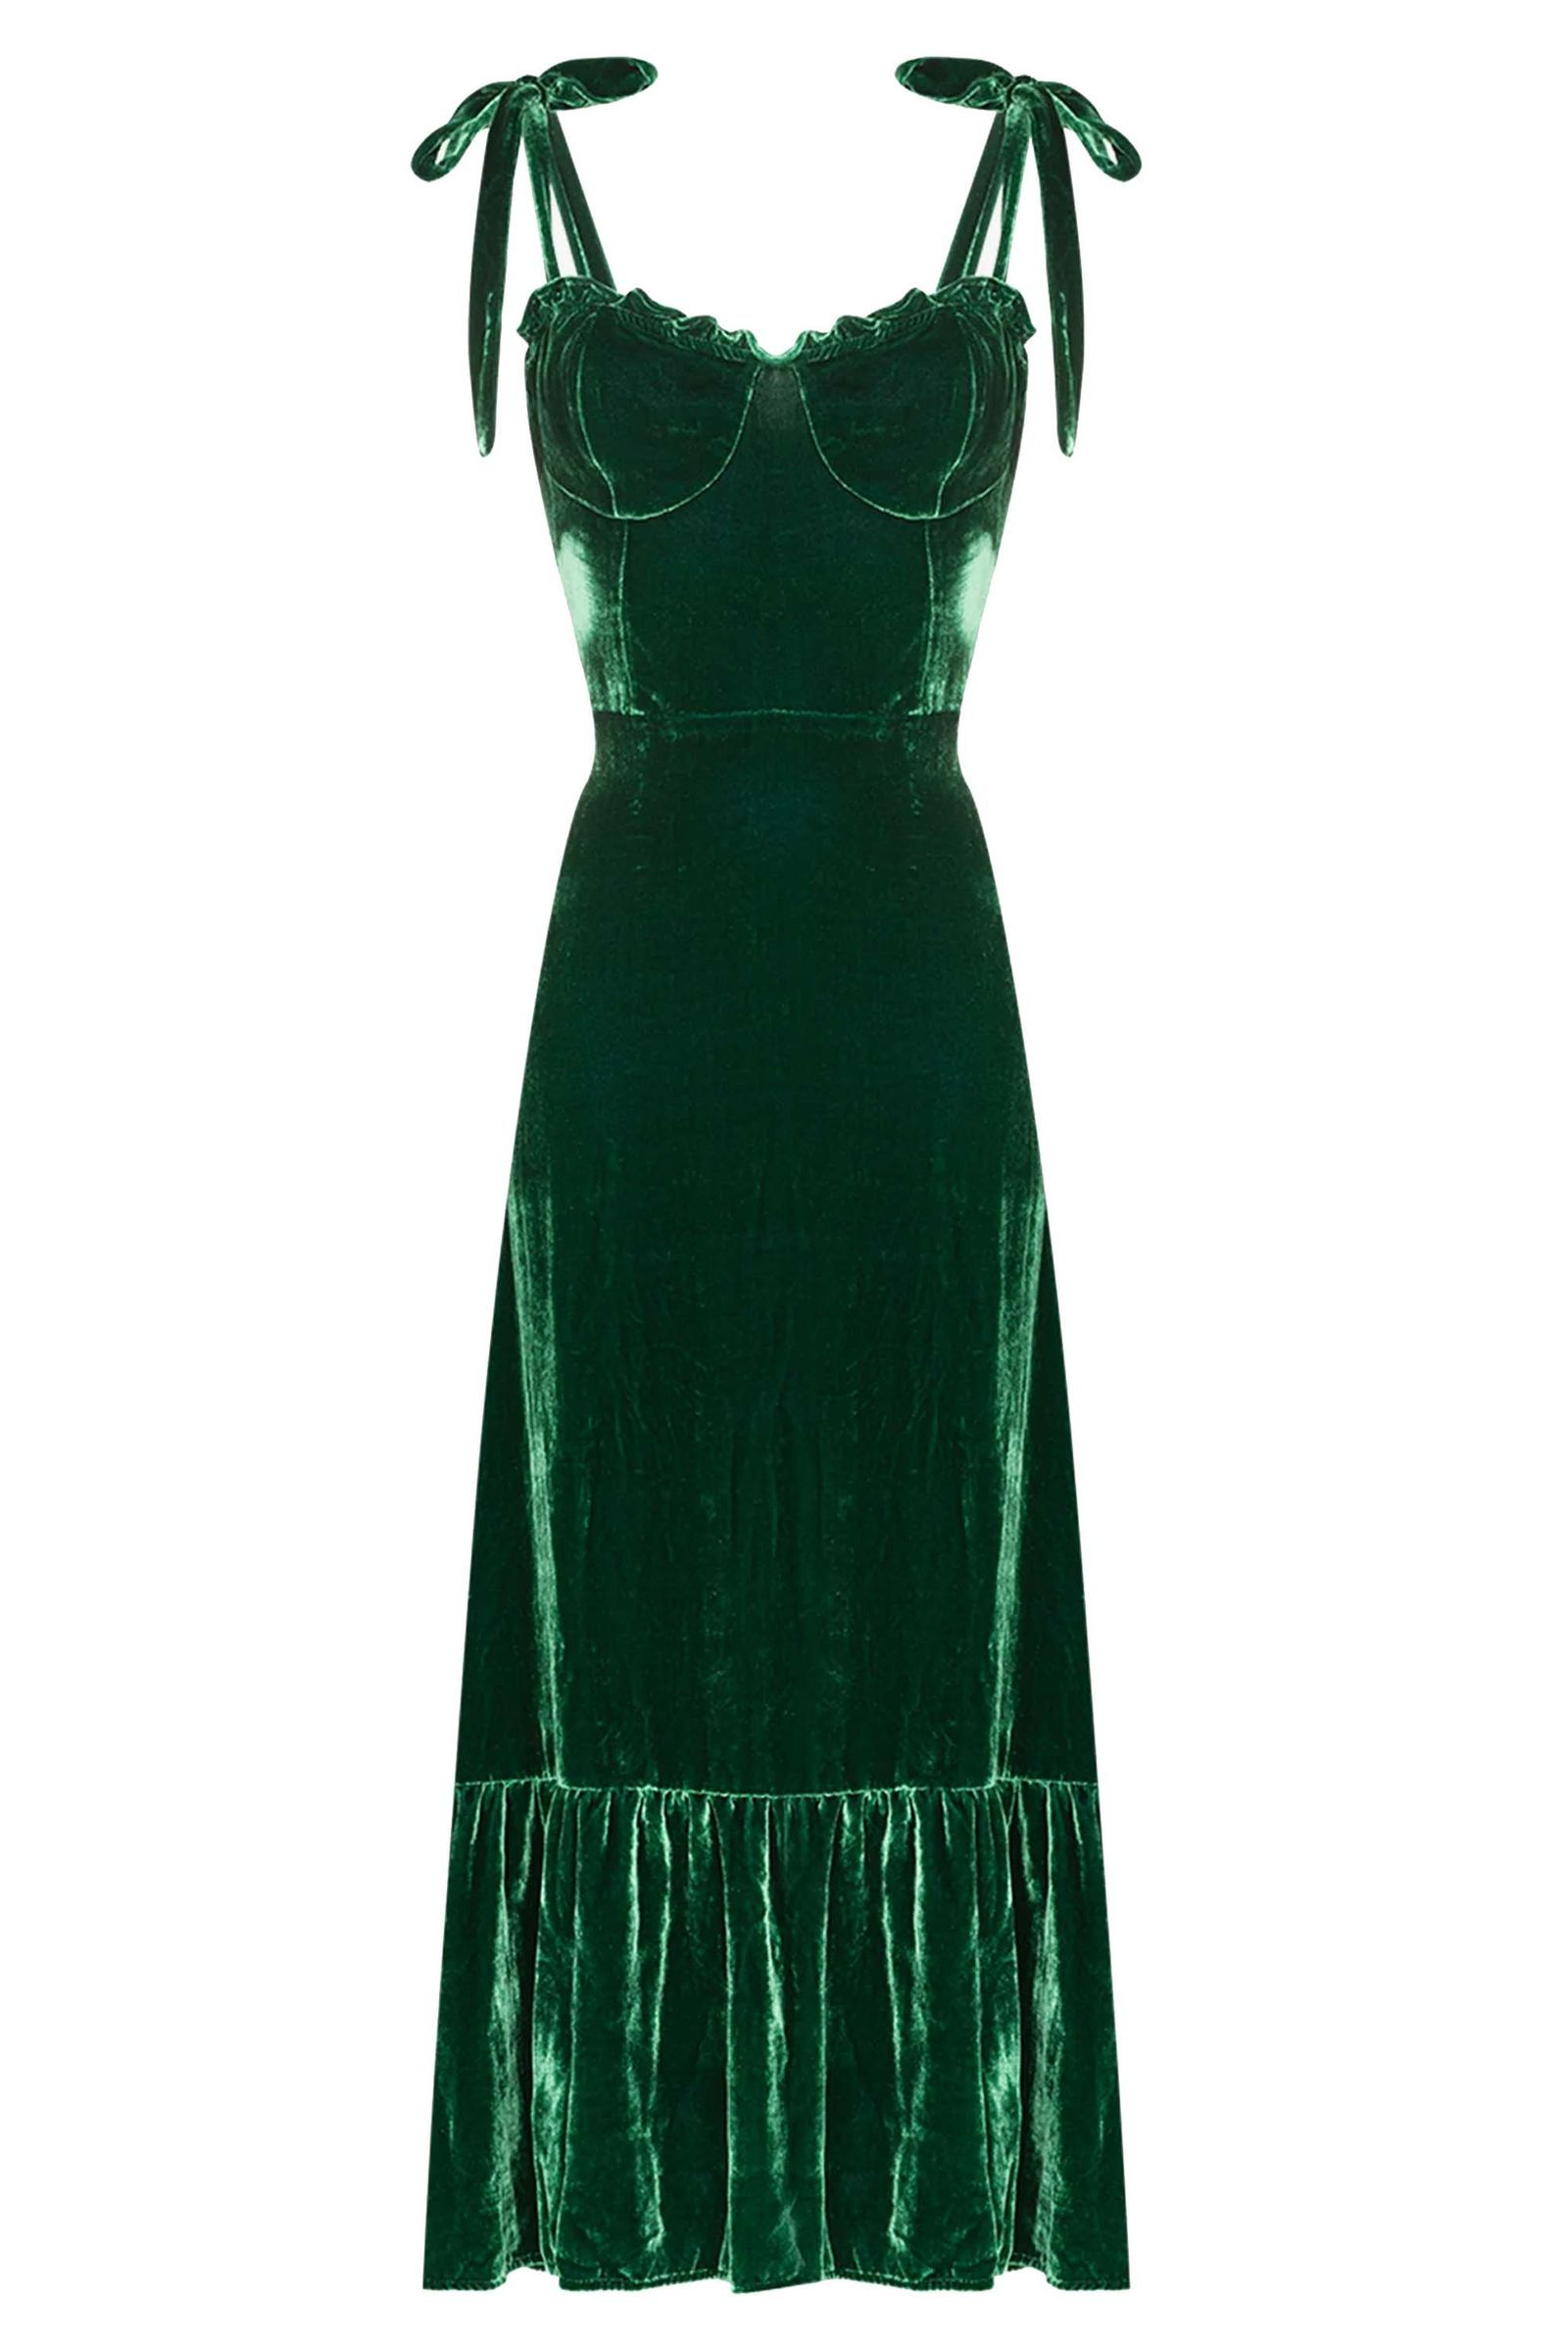 10 Incredibly Chic Party Dresses That Are Perfect For The Festive Season Green Midi Dress Short Dress Styles Sweetheart Neck Midi Dress [ 2400 x 1600 Pixel ]